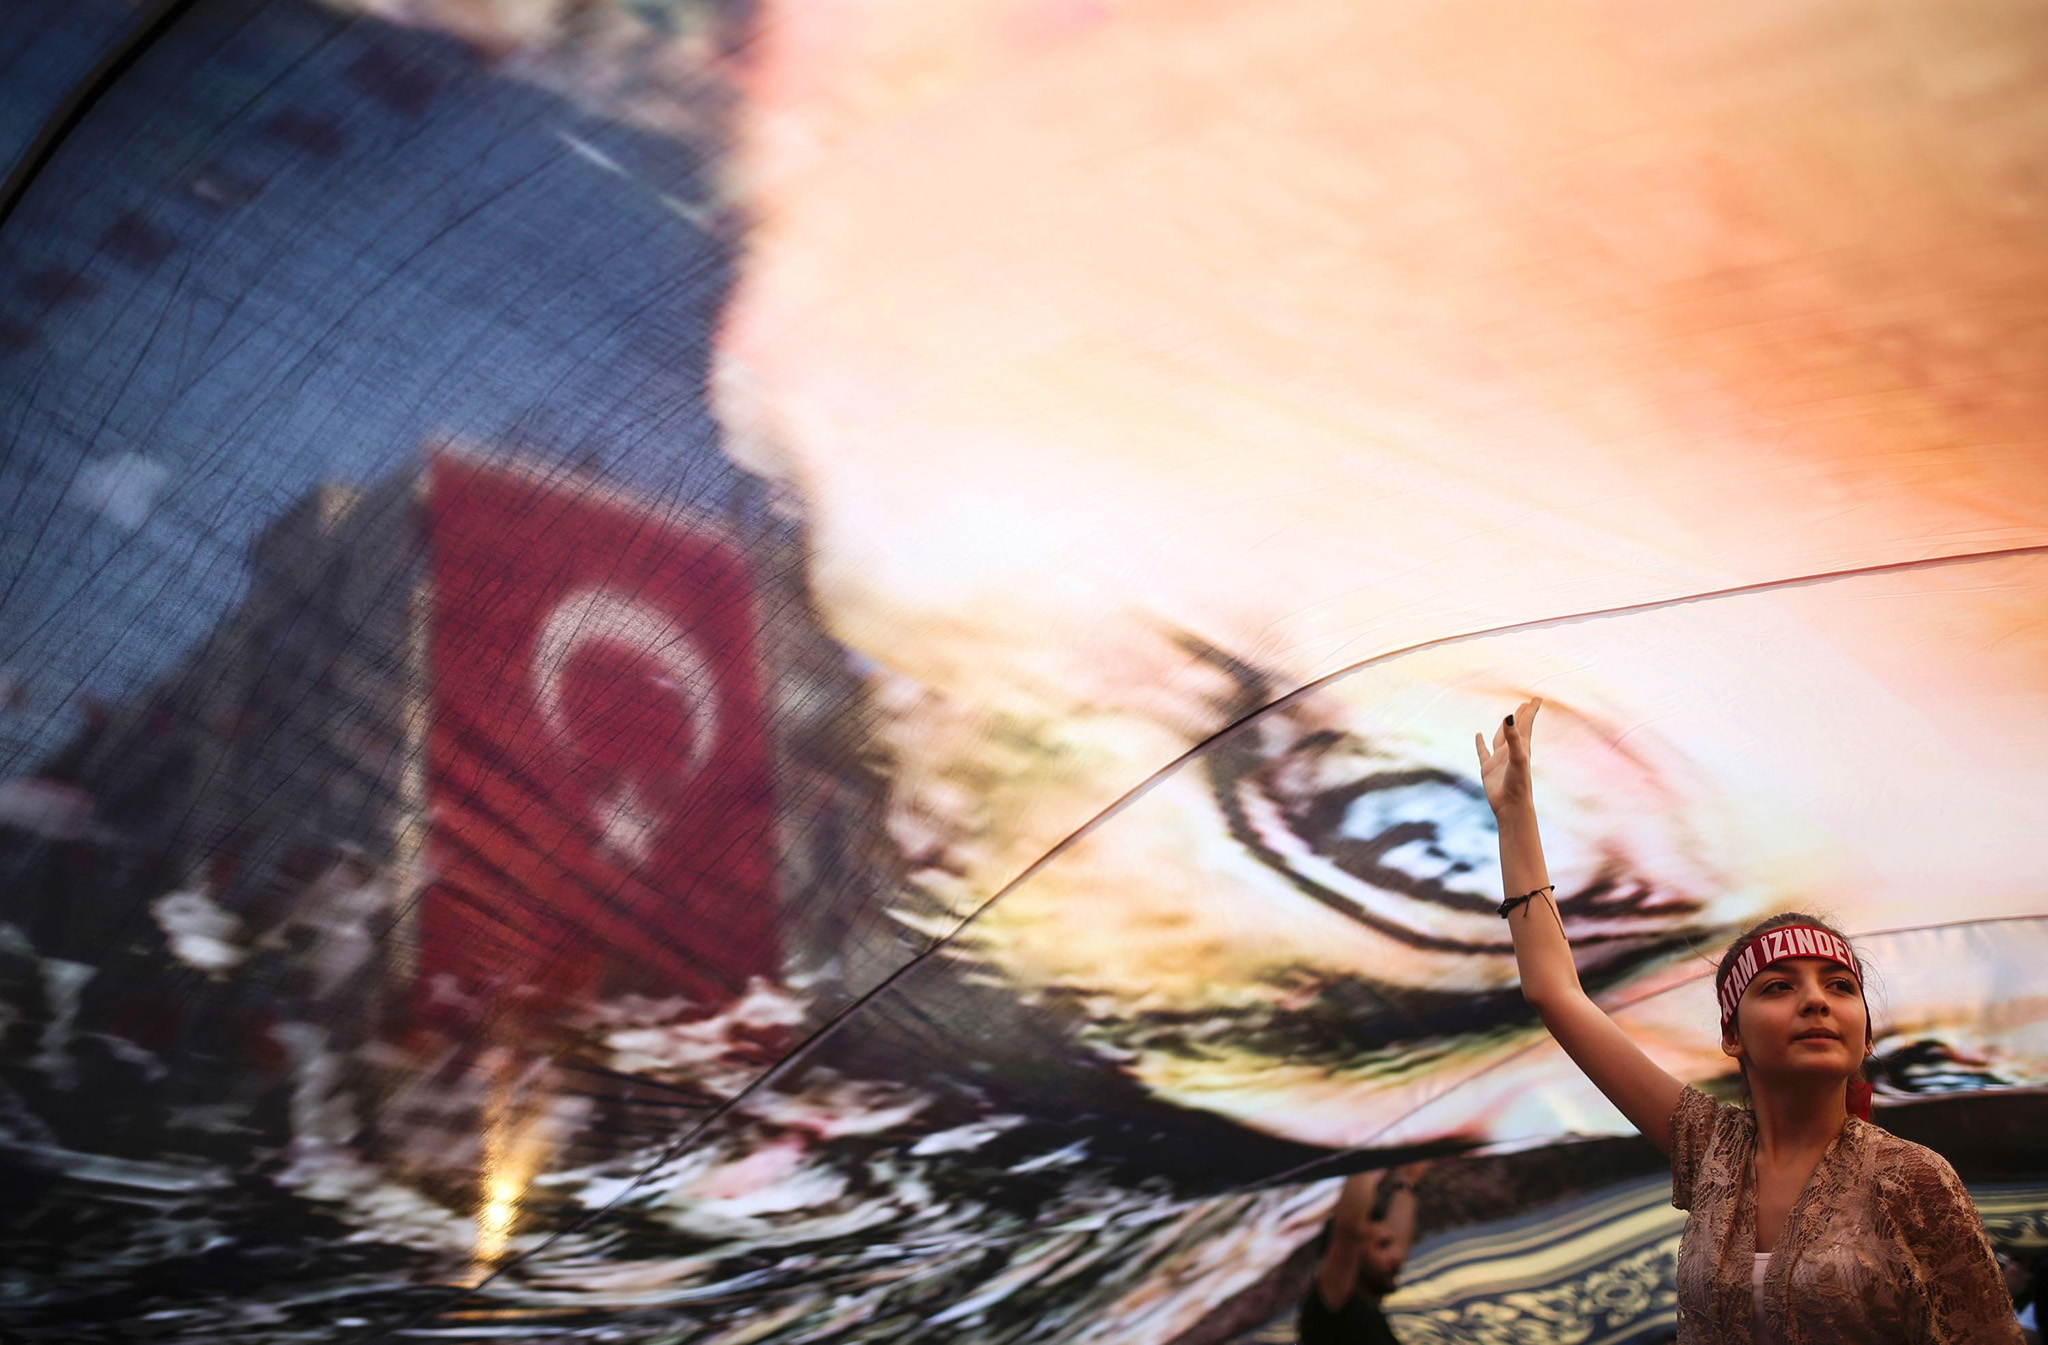 A Turkish girl gestures under a huge picture of modern Turkey's founder Mustafa Kemal Ataturk at a rally in Gundogdu Square in Izmir on August 4, 2016, protesting against the failed July 15 military coup attempt, with the participation of Republican People's Party (CHP) leader Kemal Kilicdaroglu (not pictured).  Turkey issued an arrest warrant on August 4 for US-based preacher Fethullah Gulen, accusing him of ordering the coup attempt aimed at ousting President Recep Tayyip Erdogan. An Istanbul court issued the warrant, the first after the failed putsch for the reclusive cleric in Pennsylvania, the Anadolu news agency said.  / AFP PHOTO / EMRE TAZEGULEMRE TAZEGUL/AFP/Getty Images